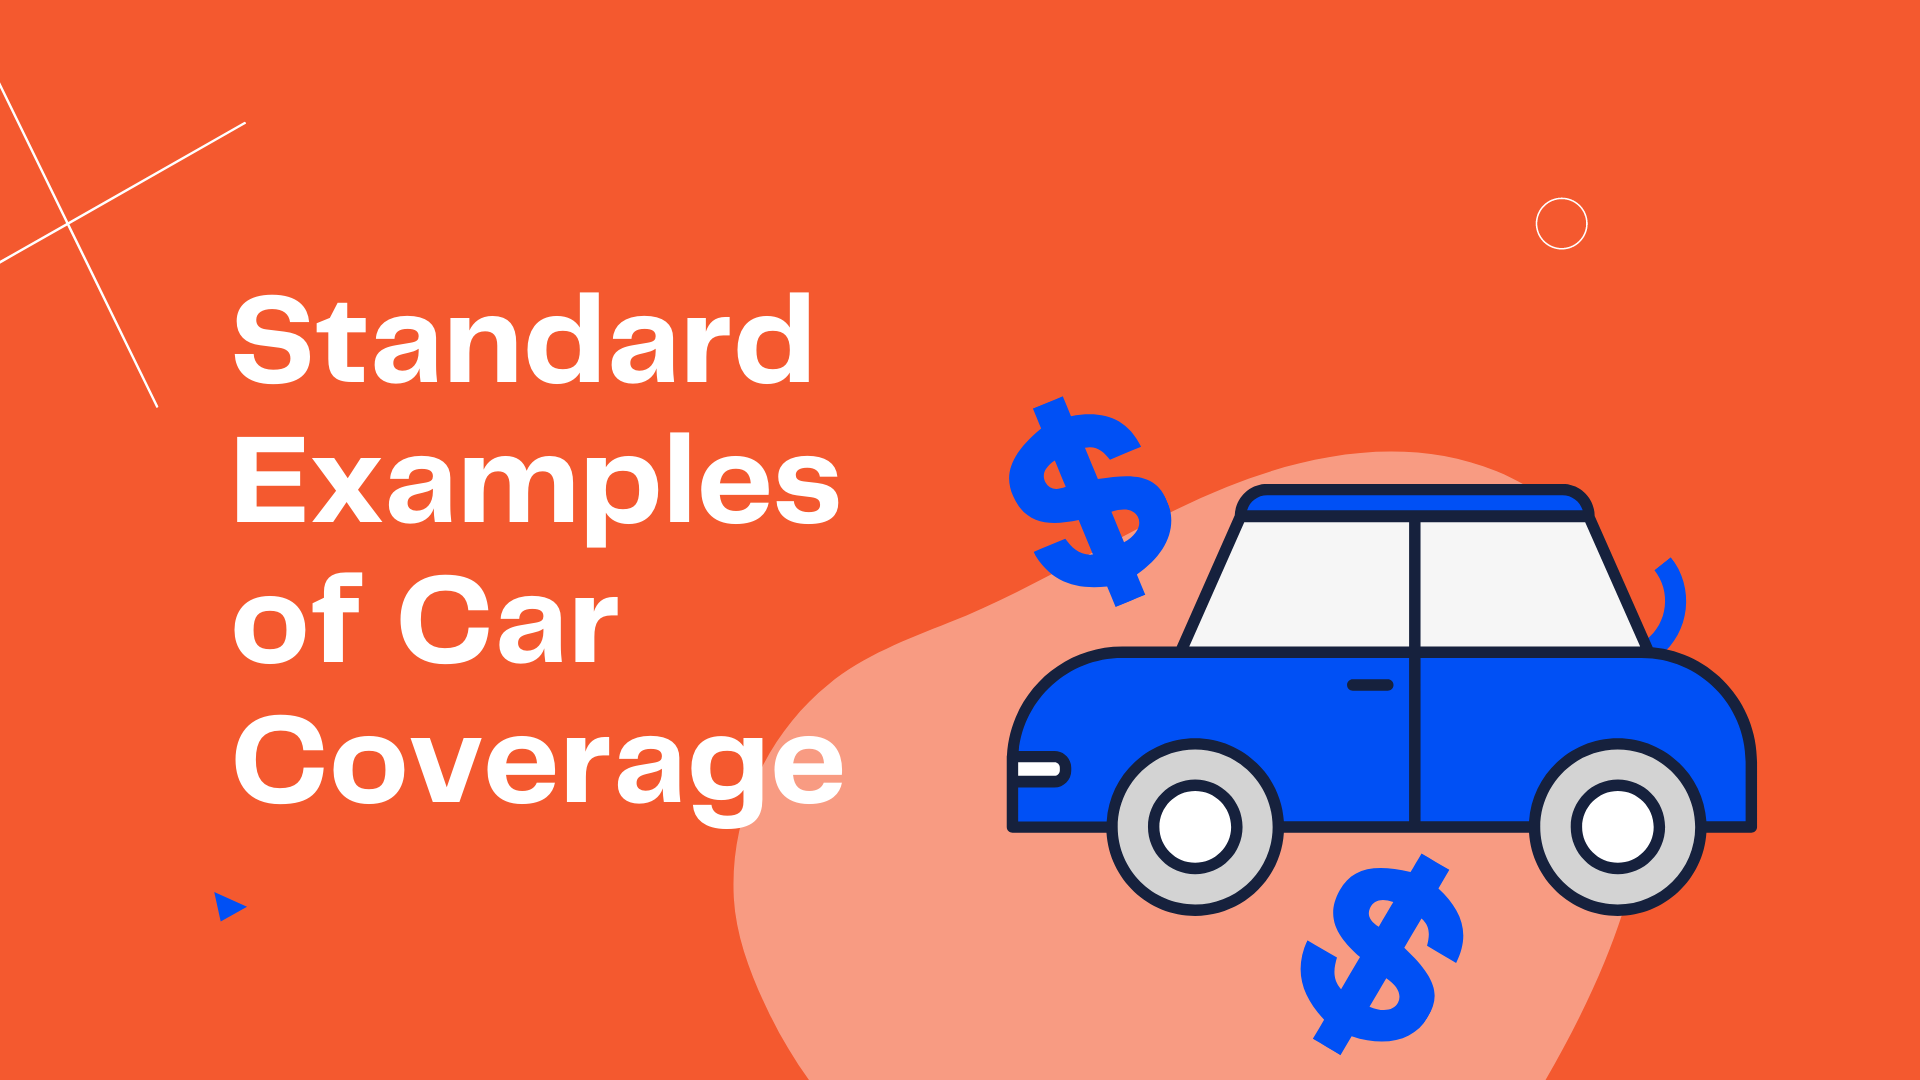 Standard Examples of Car Coverage